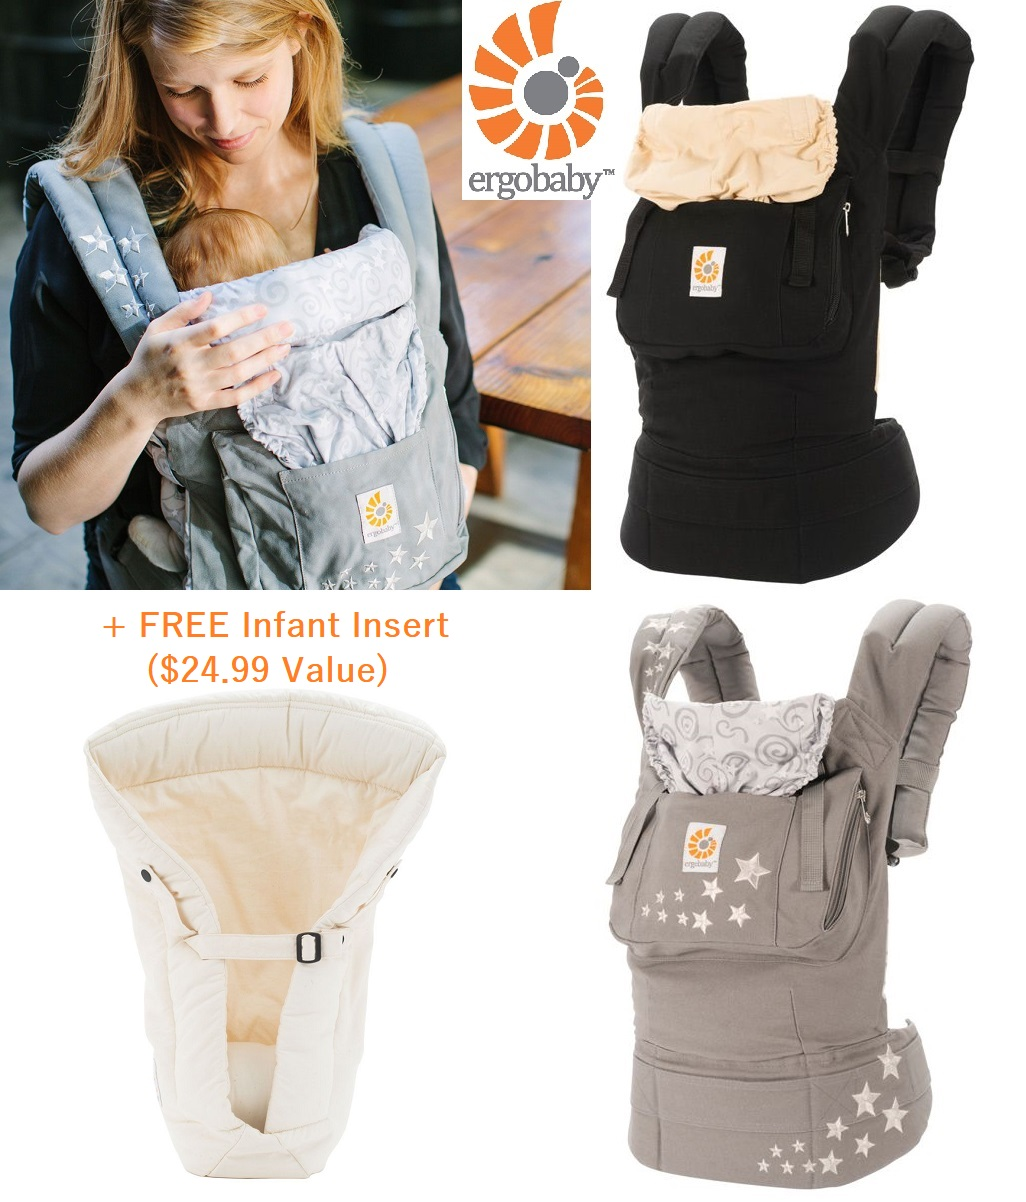 Ergobaby Original Carrier With Infant Insert Original Ergobaby Carrier Free Infant Insert